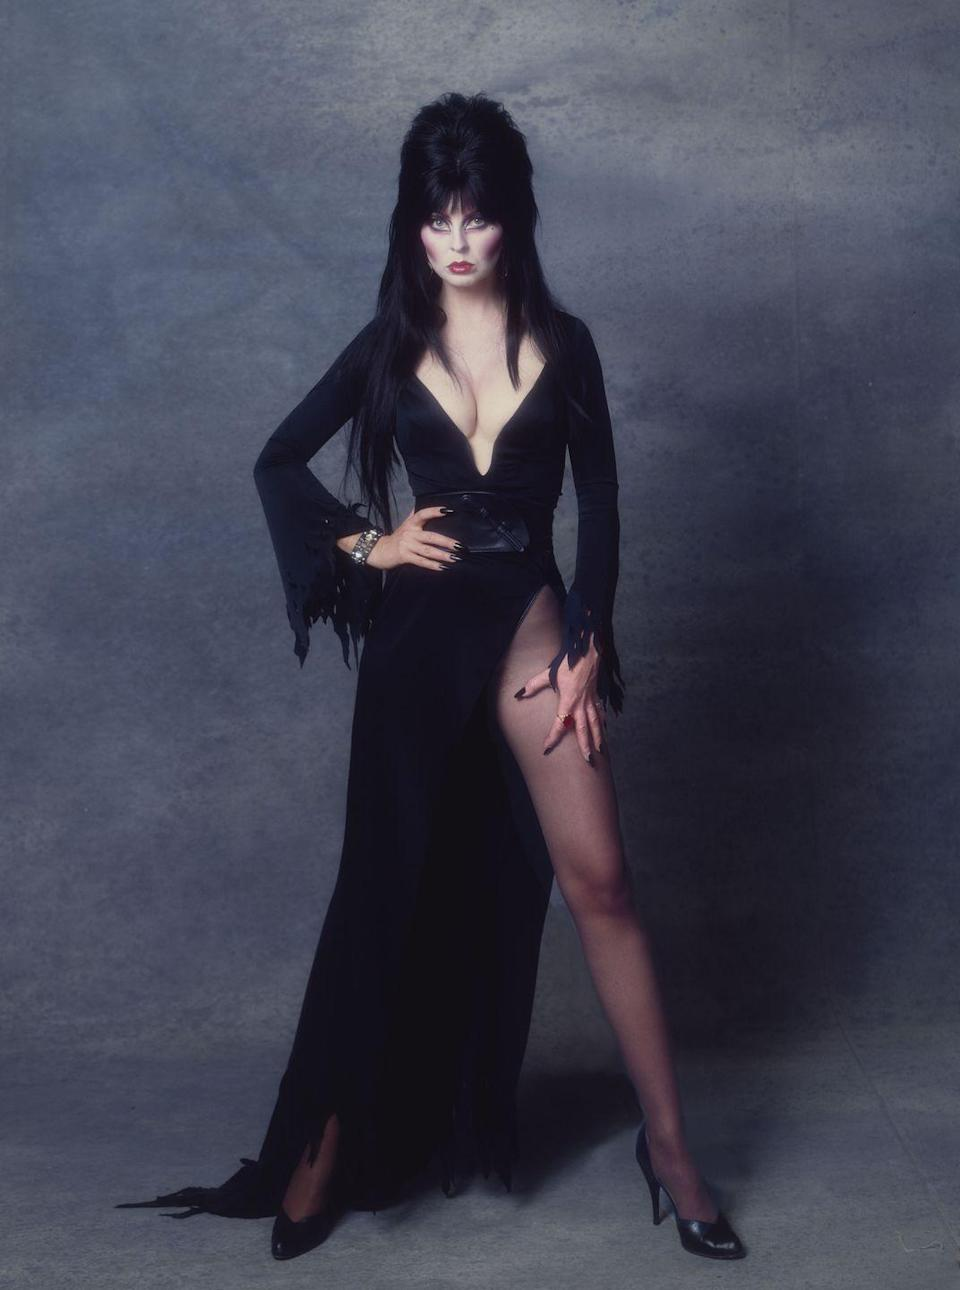 <p>The campy Mistress of Dark just gets better with age. Top it off with piles of black hair and a whole lotta leg.</p>